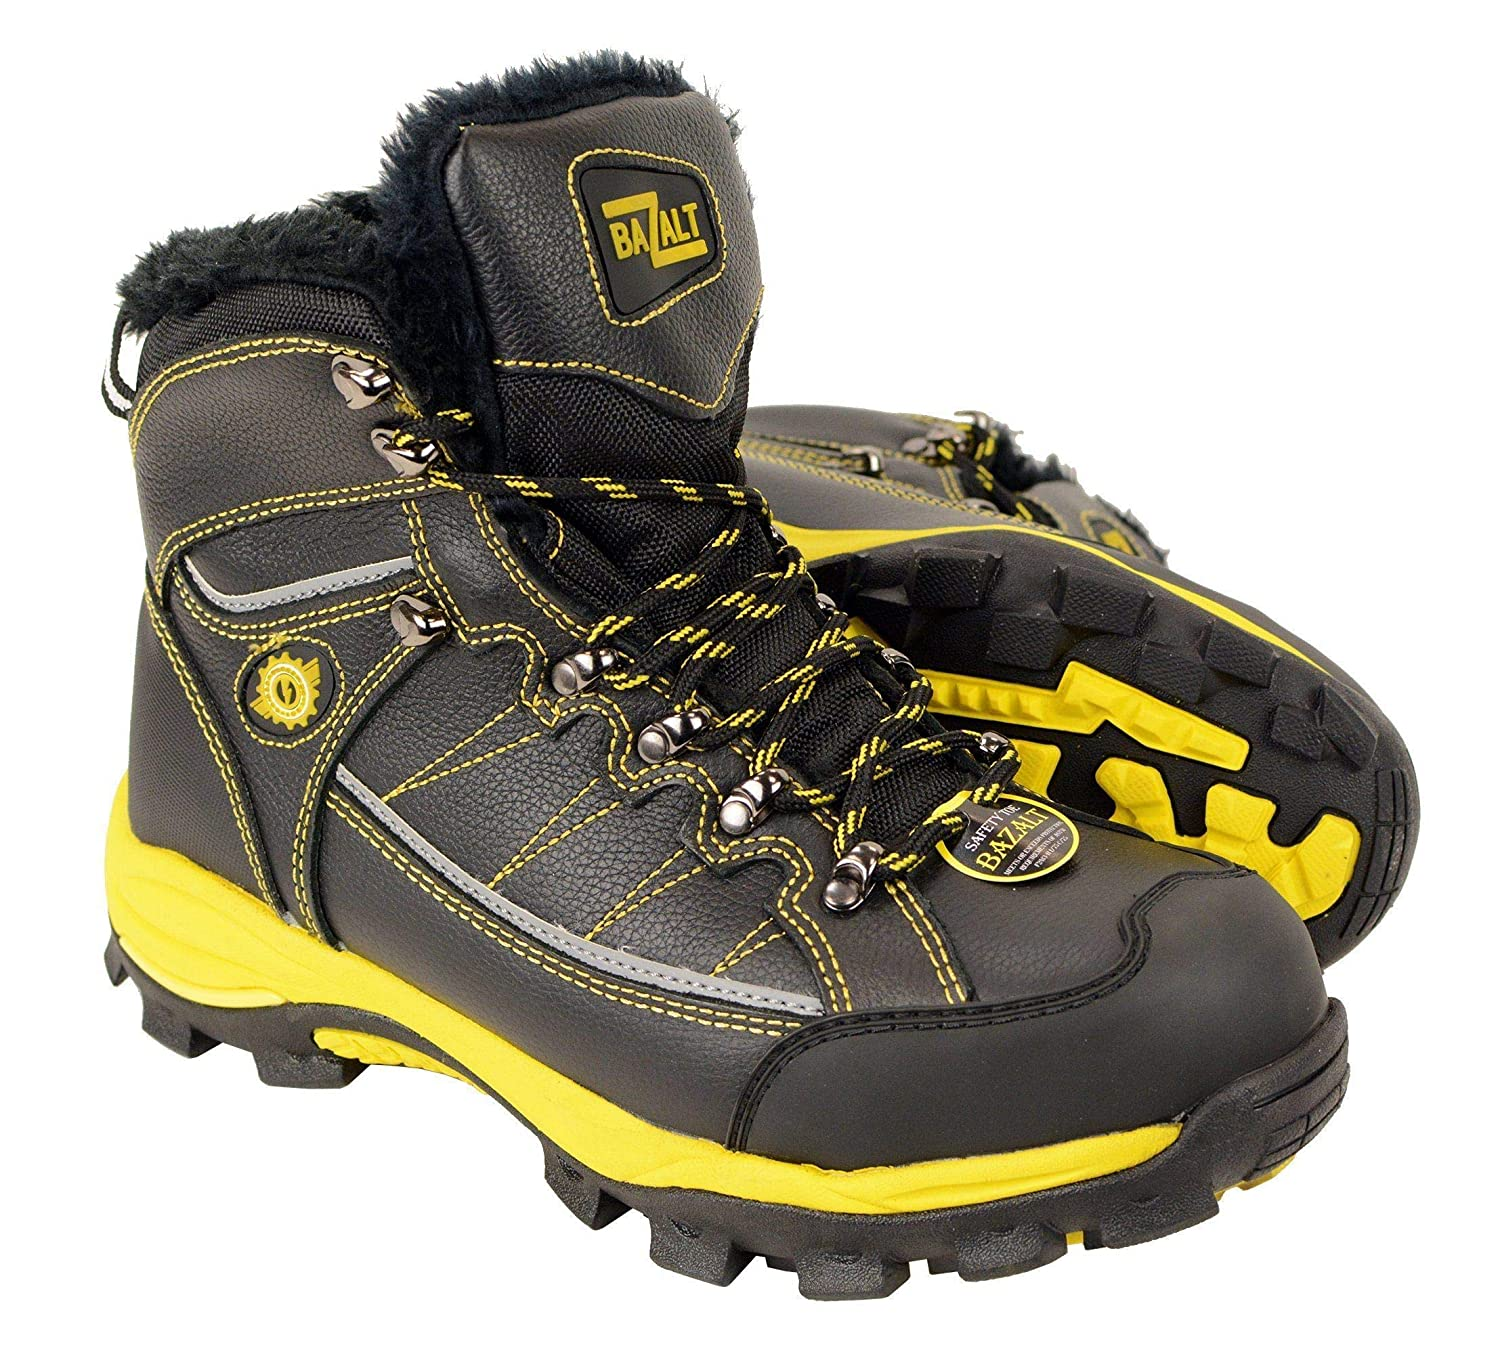 Bazalt-Men' s Black & Yellow Water&Frost Proof Leather Boots w/Faux Fur Lining & Composite Toe-BLK/YEL MBM9125ST-BLK/YELLOW